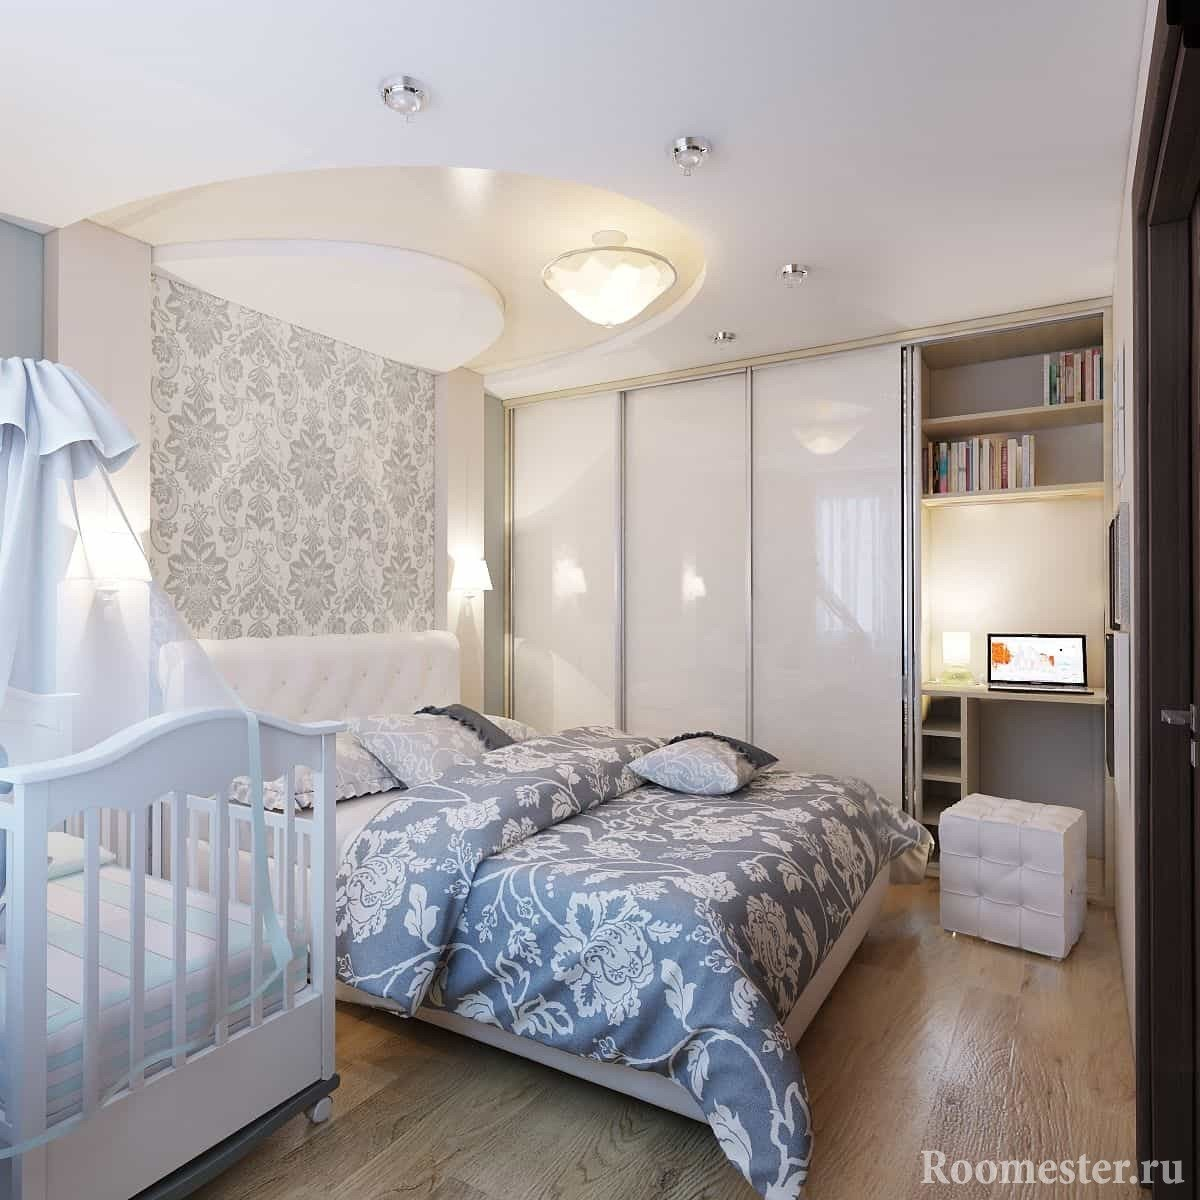 Bedroom 4 by 4 meters with baby cot